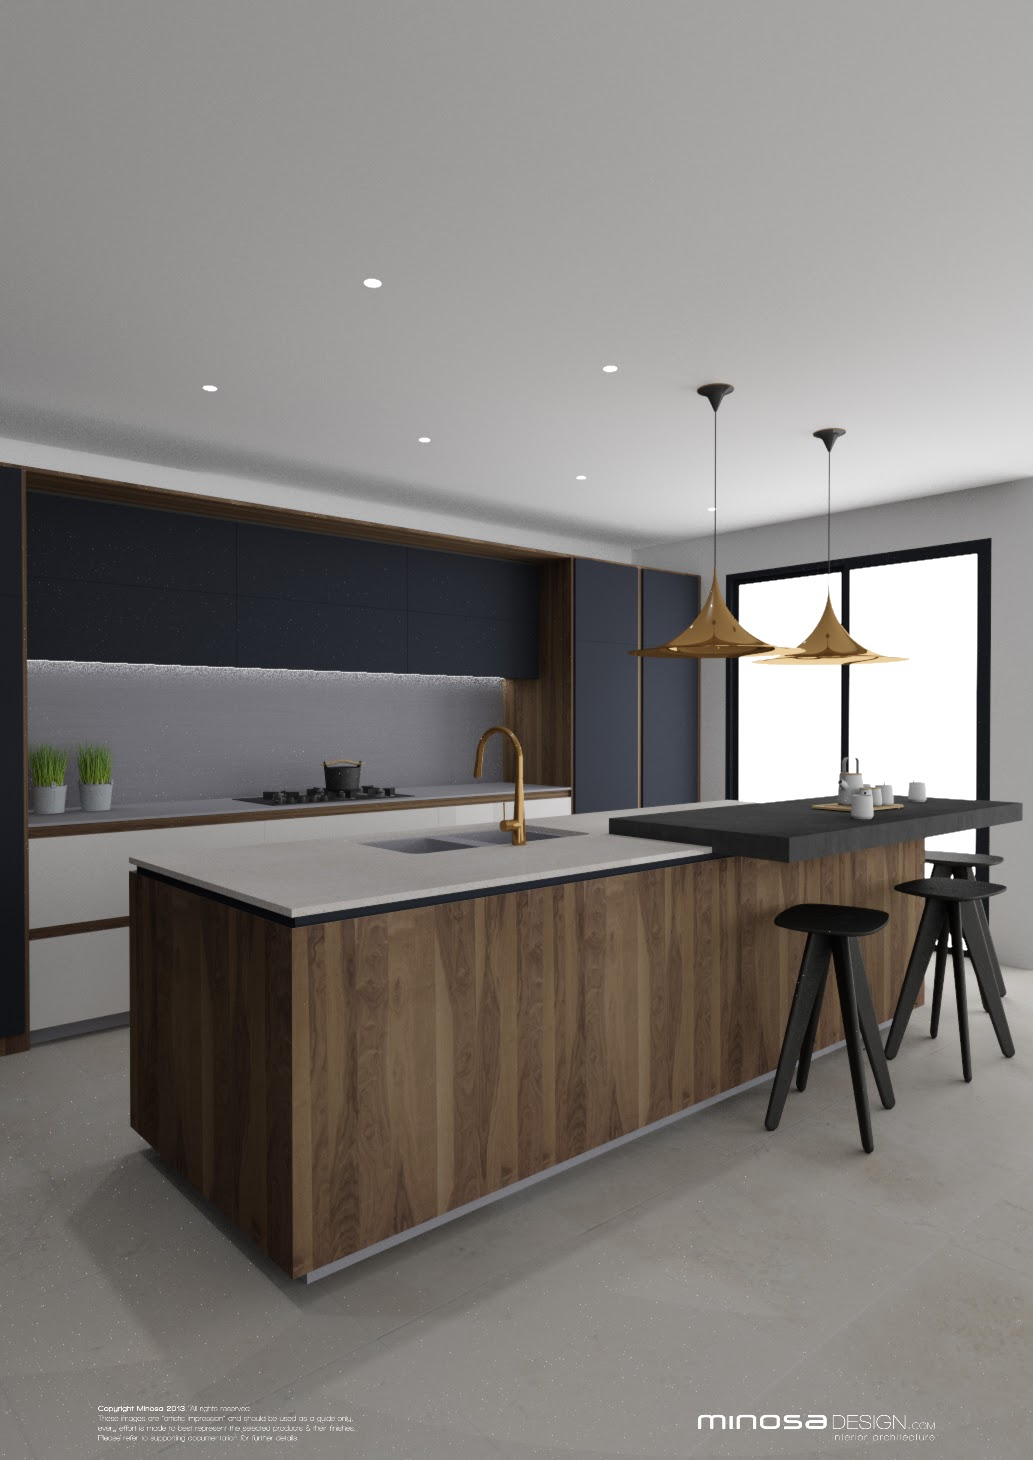 Minosa striking kitchen design with rich wood copper for Kichan dizain